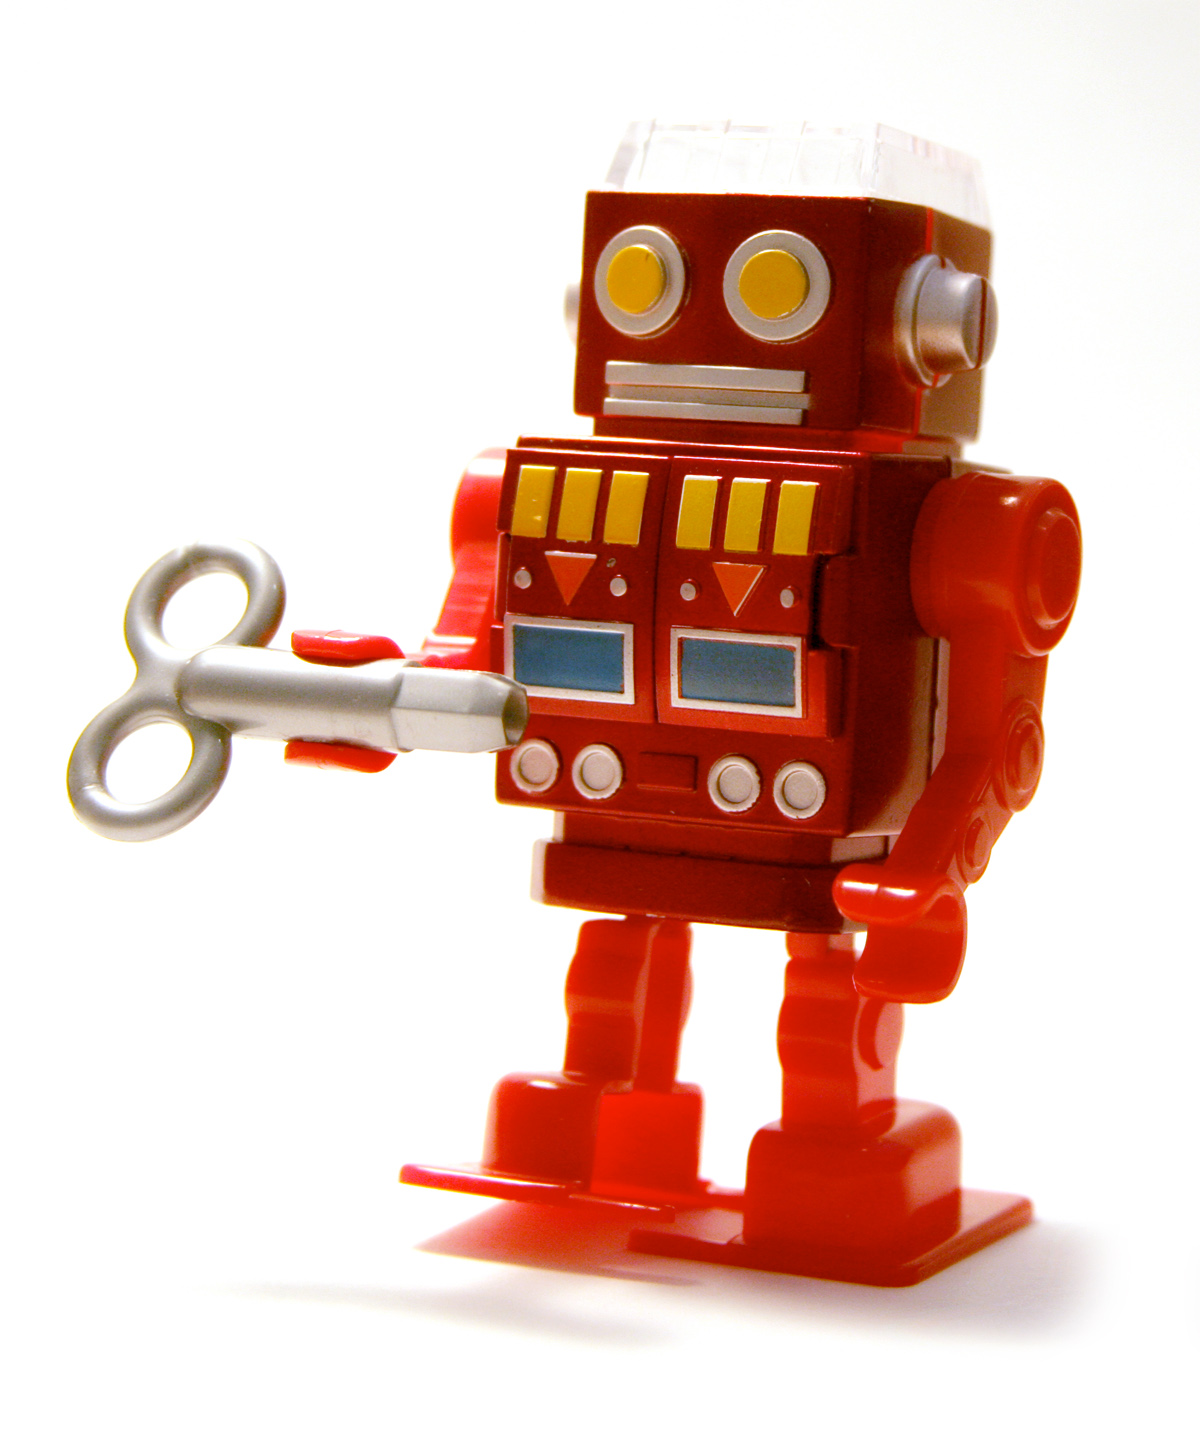 retro red robot